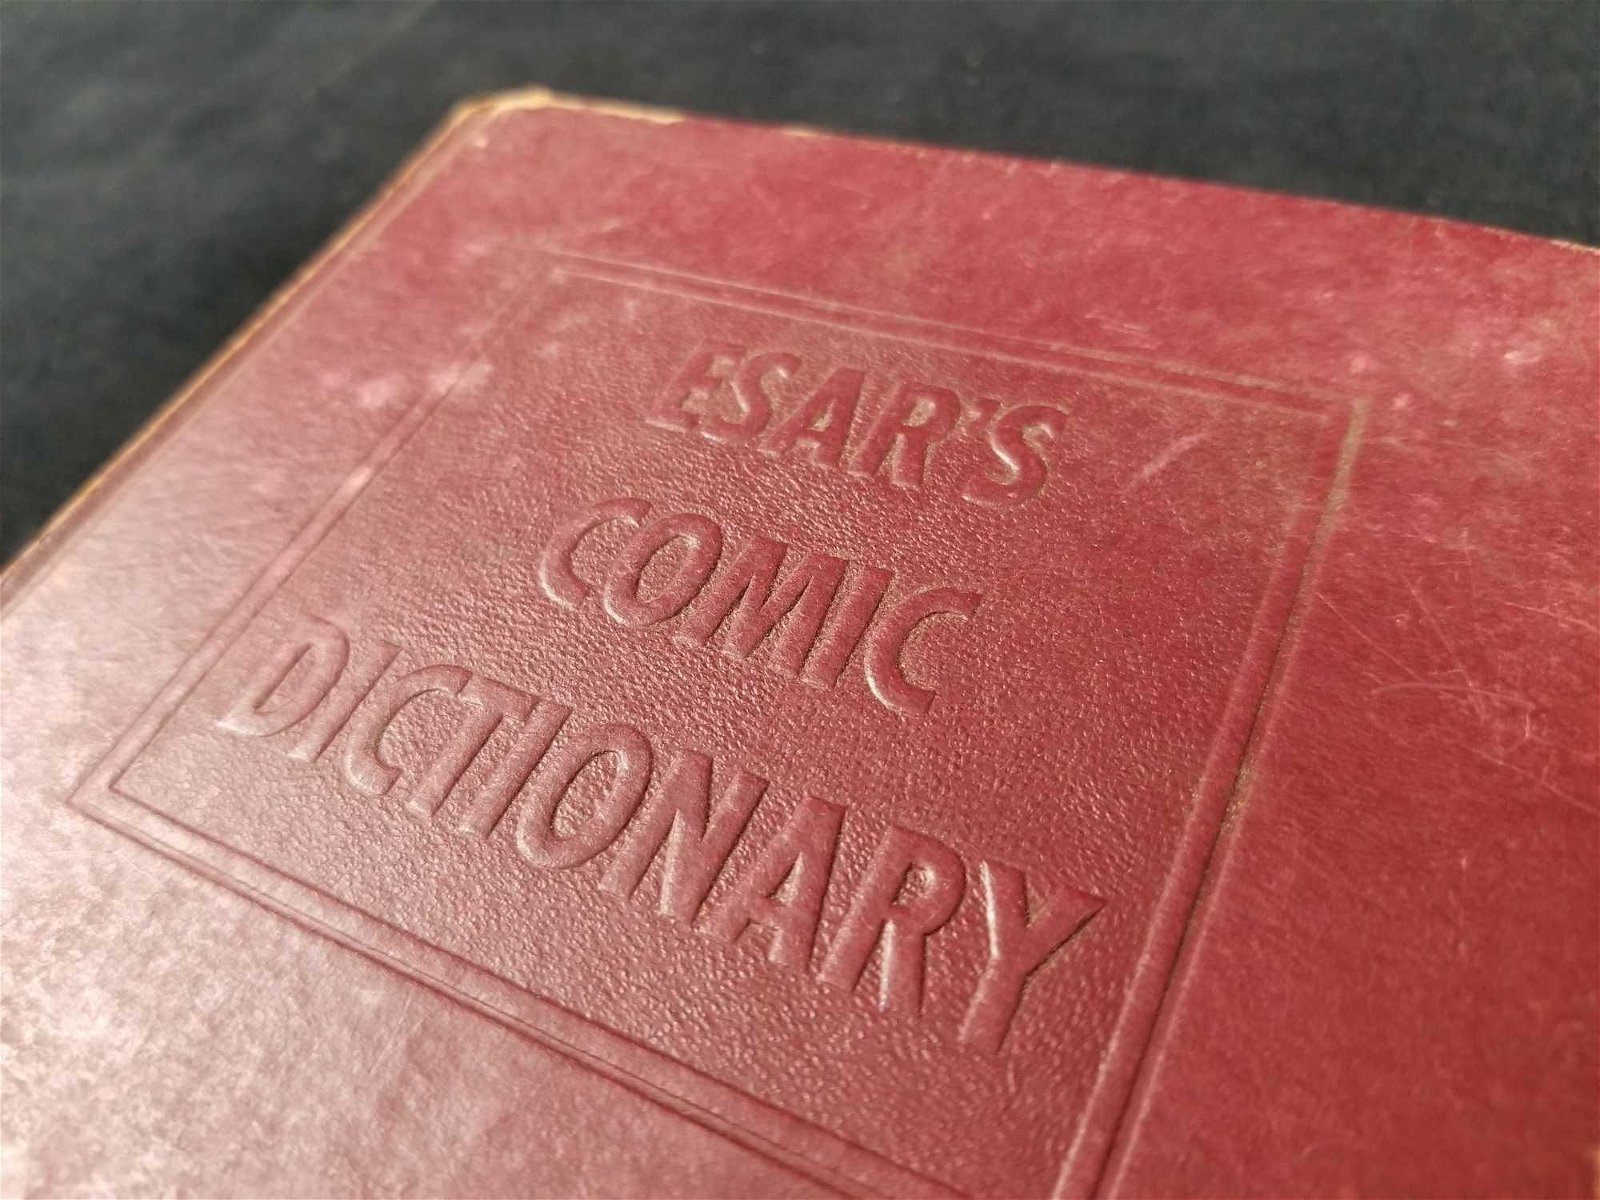 ESARS Comic Dictionary 1943 First Edition Hardcover